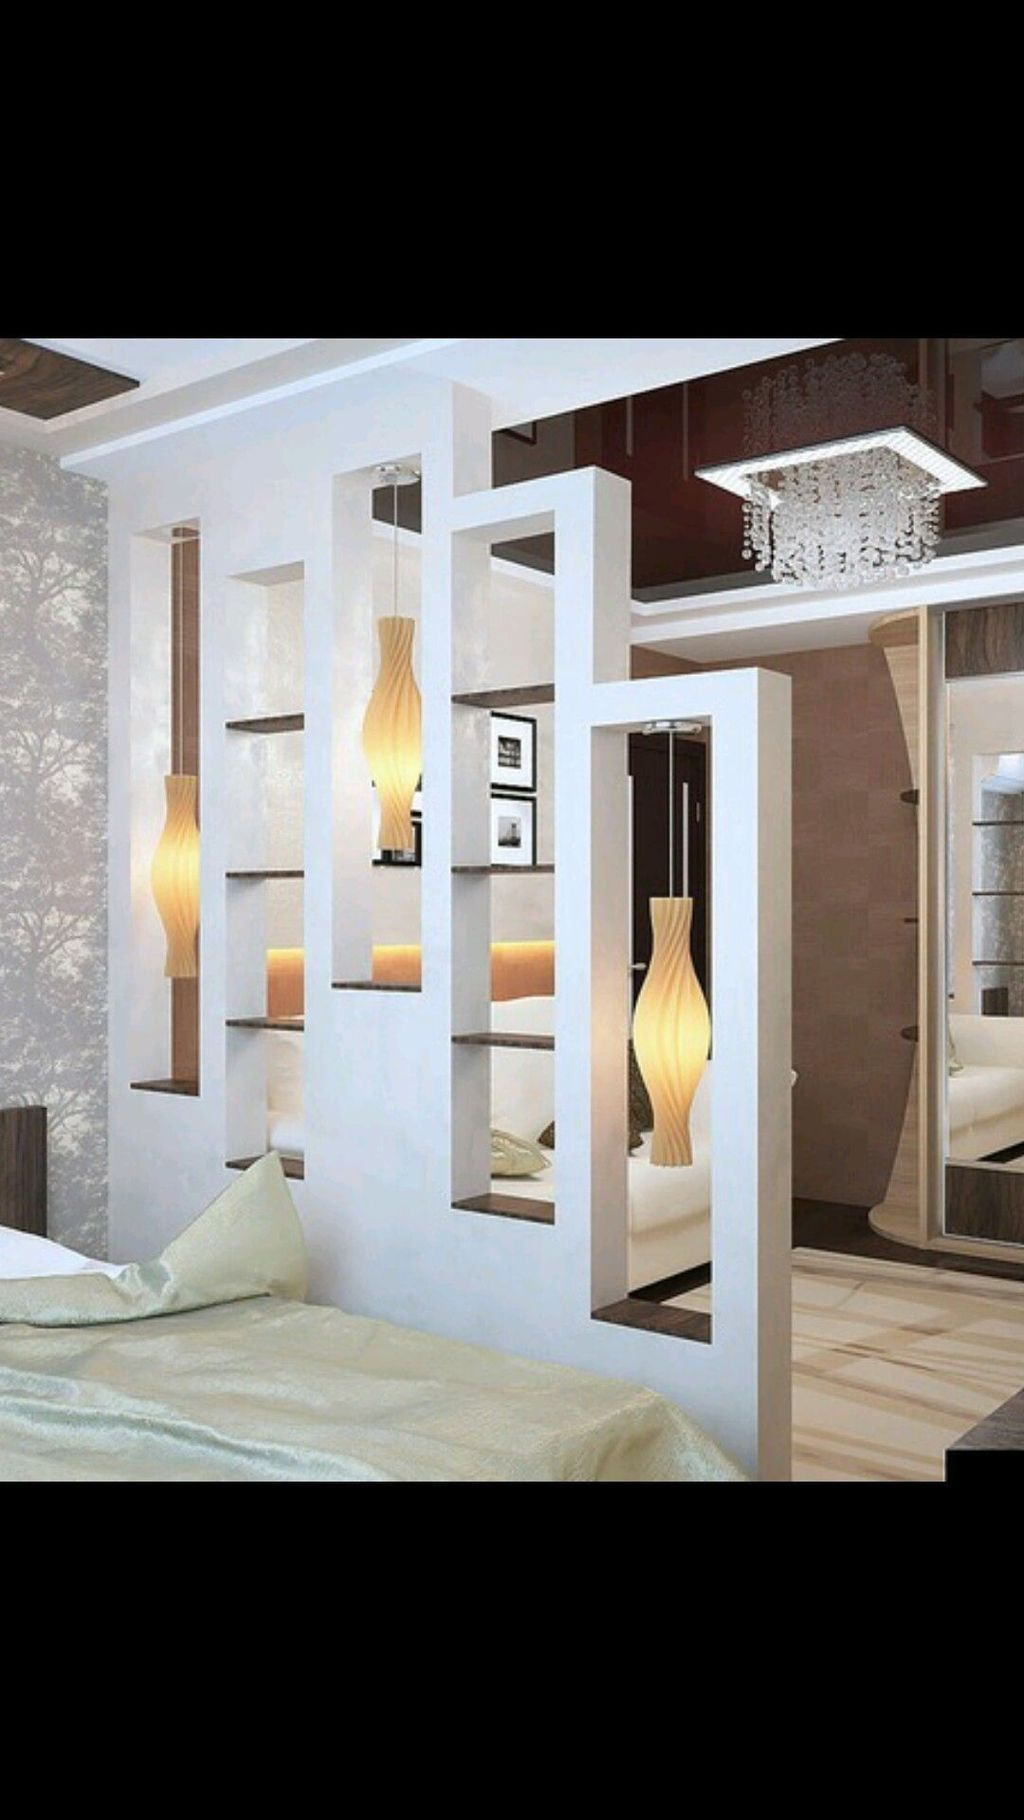 30 Affordable Glass Partition Living Room Design Ideas To Try Affordable D In 2020 Living Room Partition Design Living Room Partition Minimalist Living Room Decor